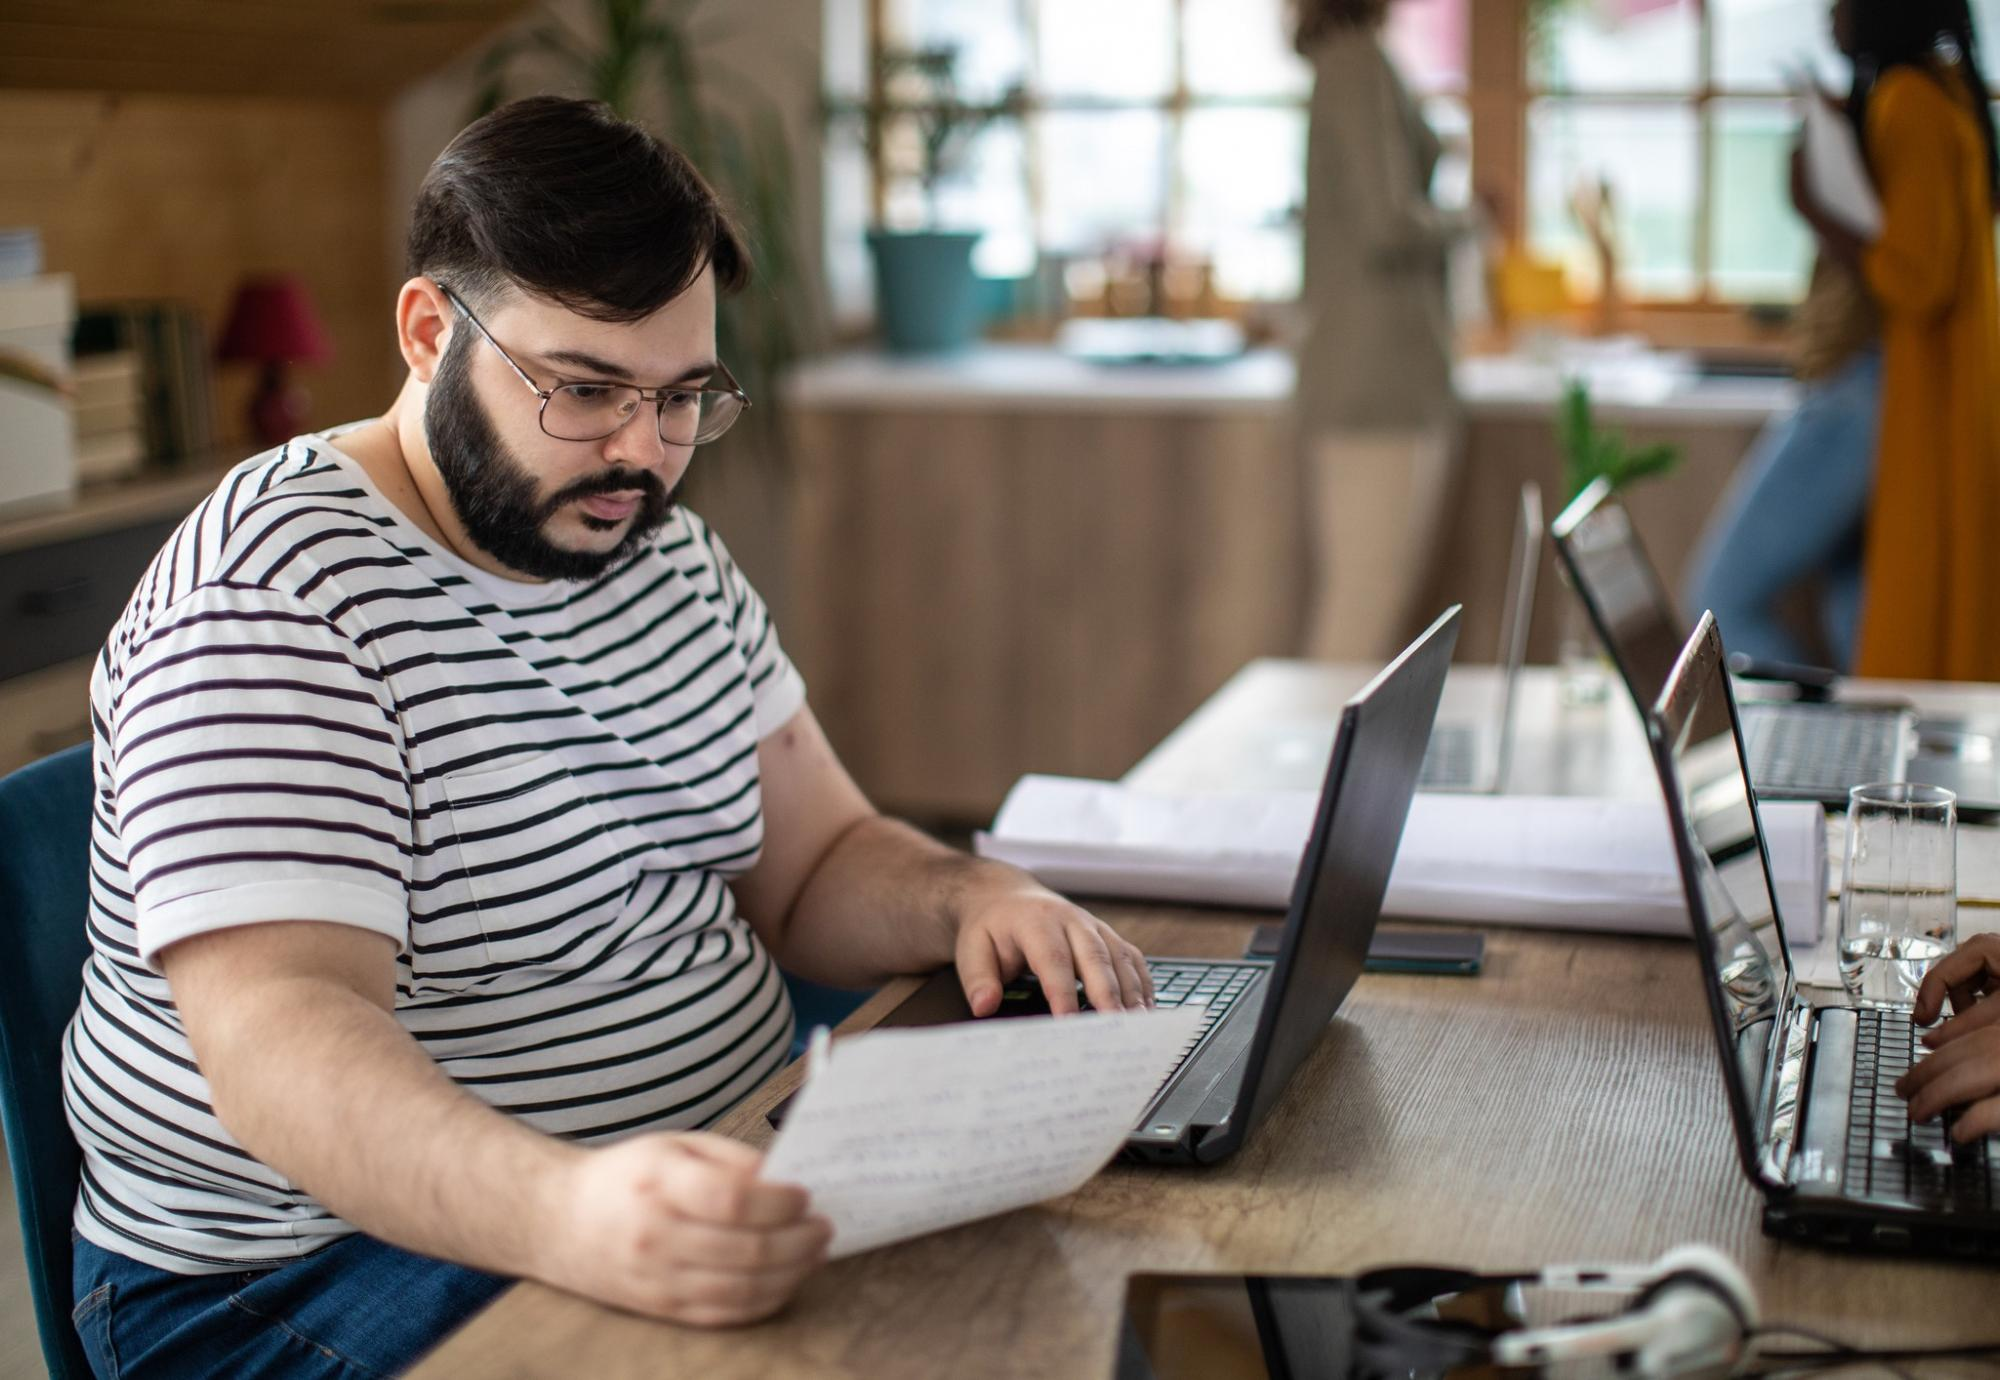 Overweight man at a laptop working